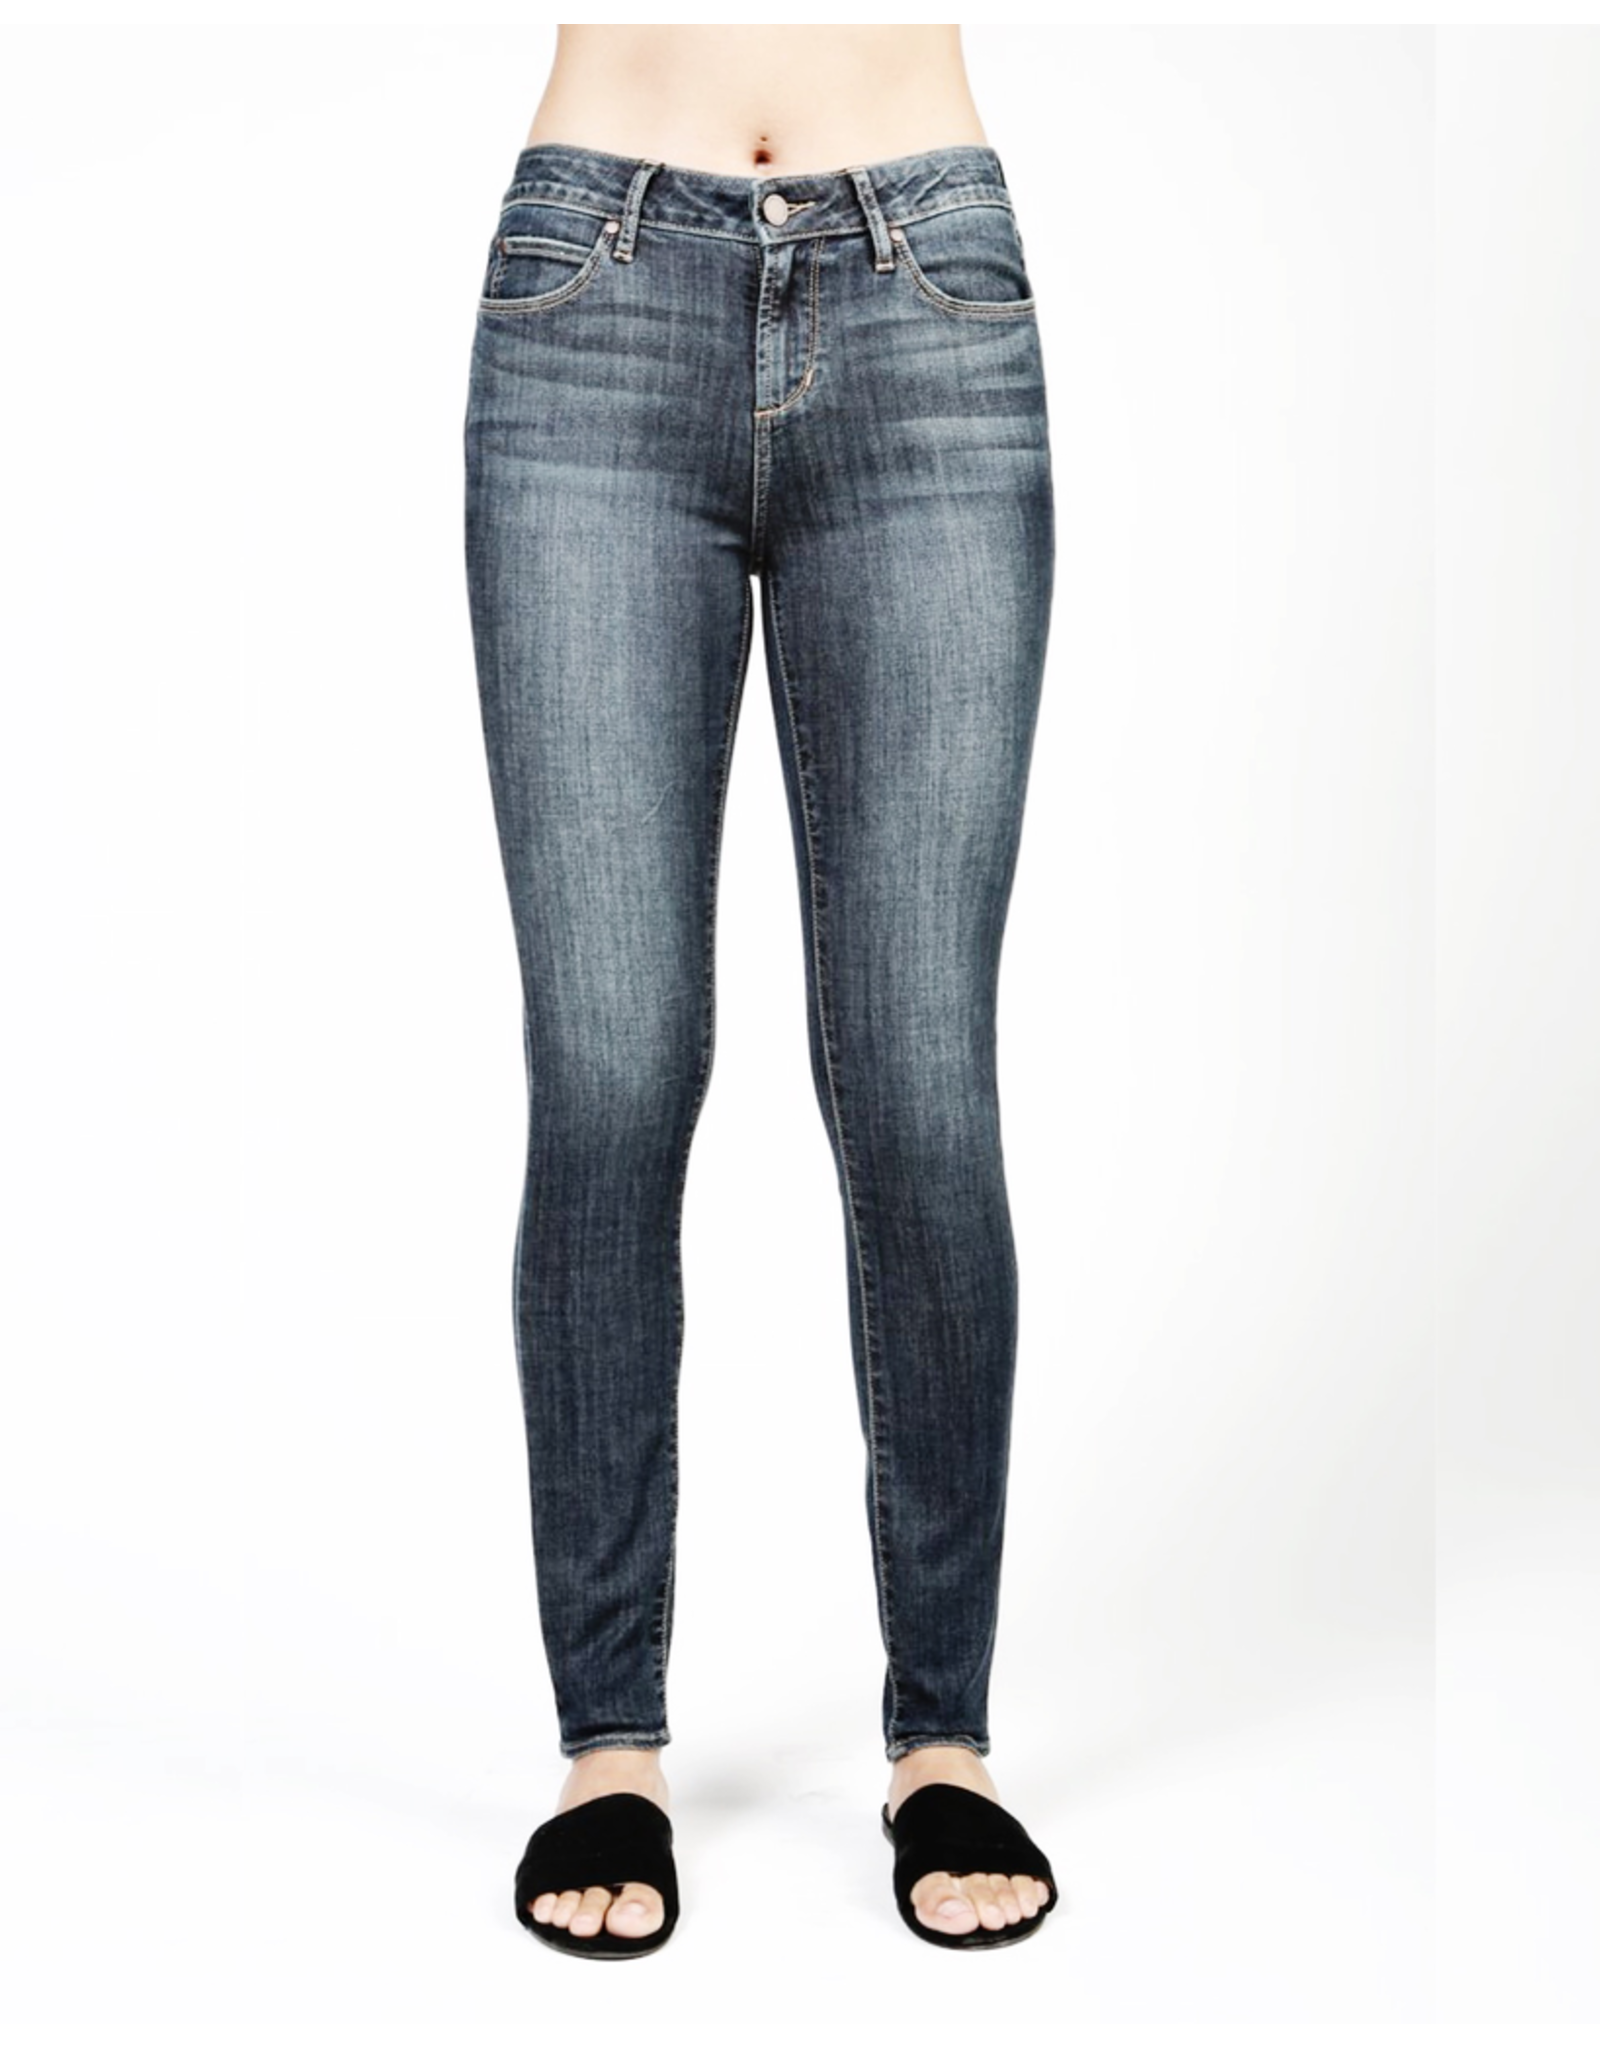 flight lux articles of society sarah ankle skinny jeans